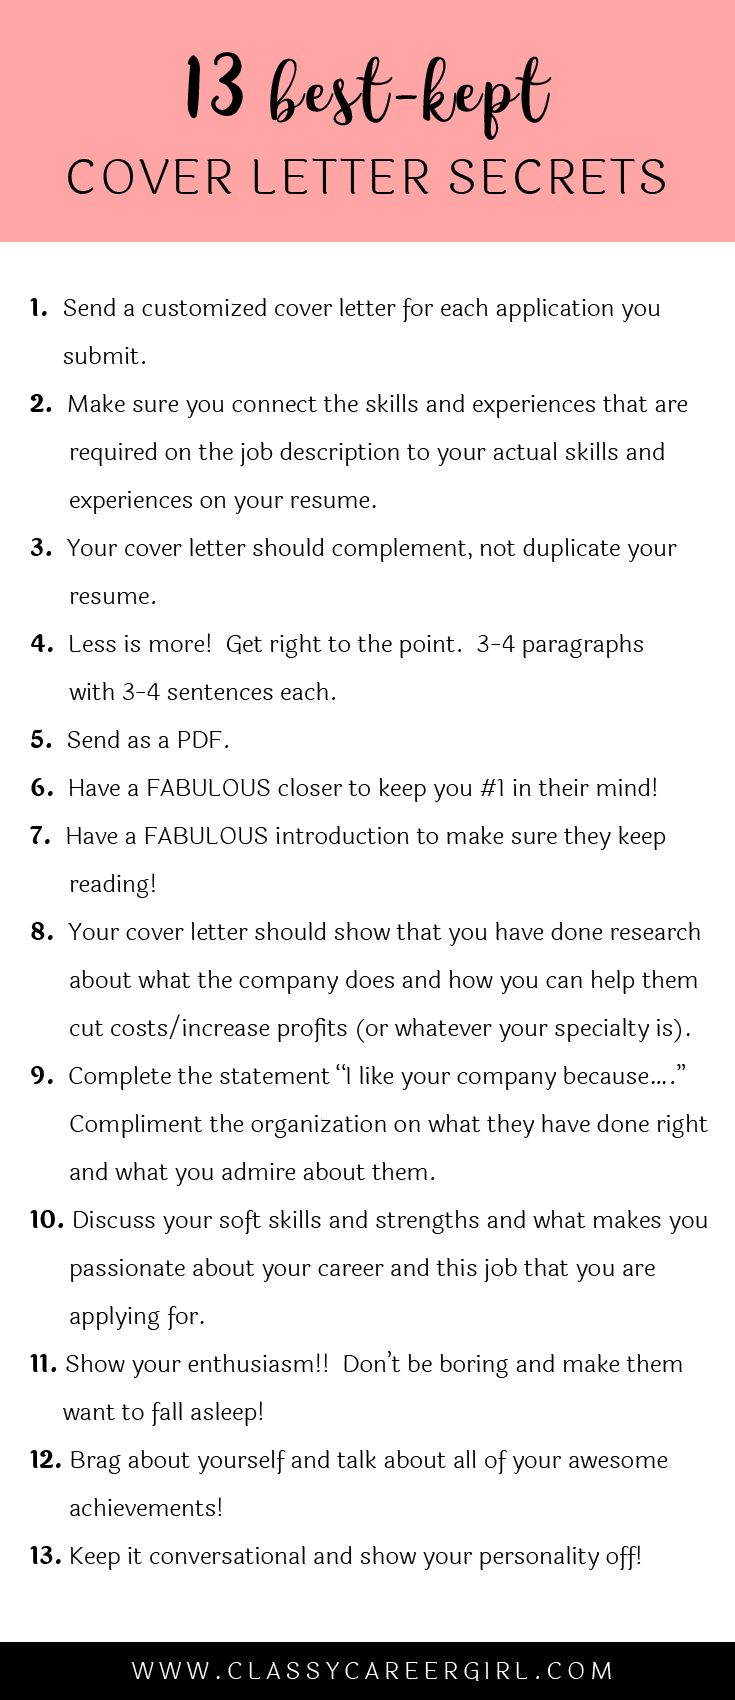 the 13 best kept cover letter secrets cover letter resumecover letter tipswriting - What To Write On A Resume Cover Letter